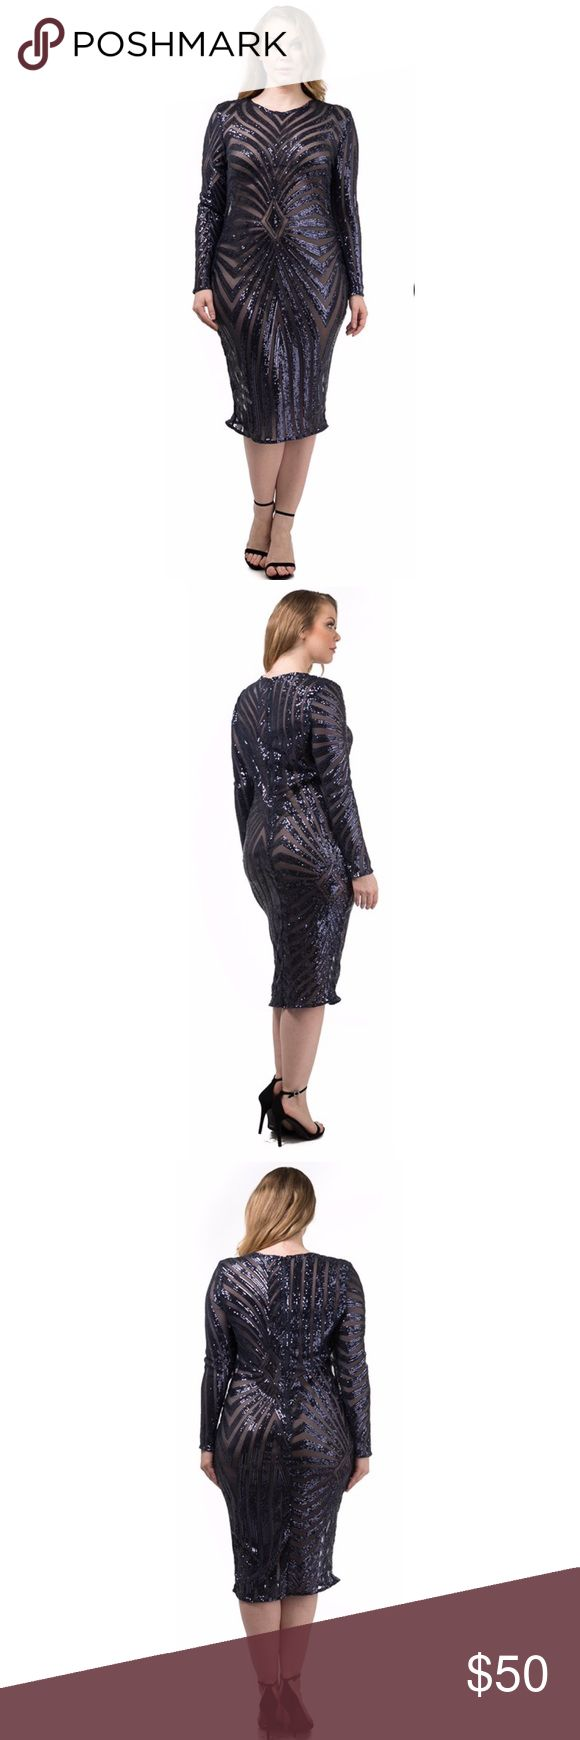 Plus Size Sequined Midi dress Brand new from our online boutique. Available in sizes 1x-3x which are true to size. Black see thru dress with dark blue sequins for highlight. Match with a black or blue slip for a perfect night out with friends or your loved one. Check out more items at www.limonadacouture.com ** 16/18 fits size 2x and 20/22 fits size 3x Dresses Midi